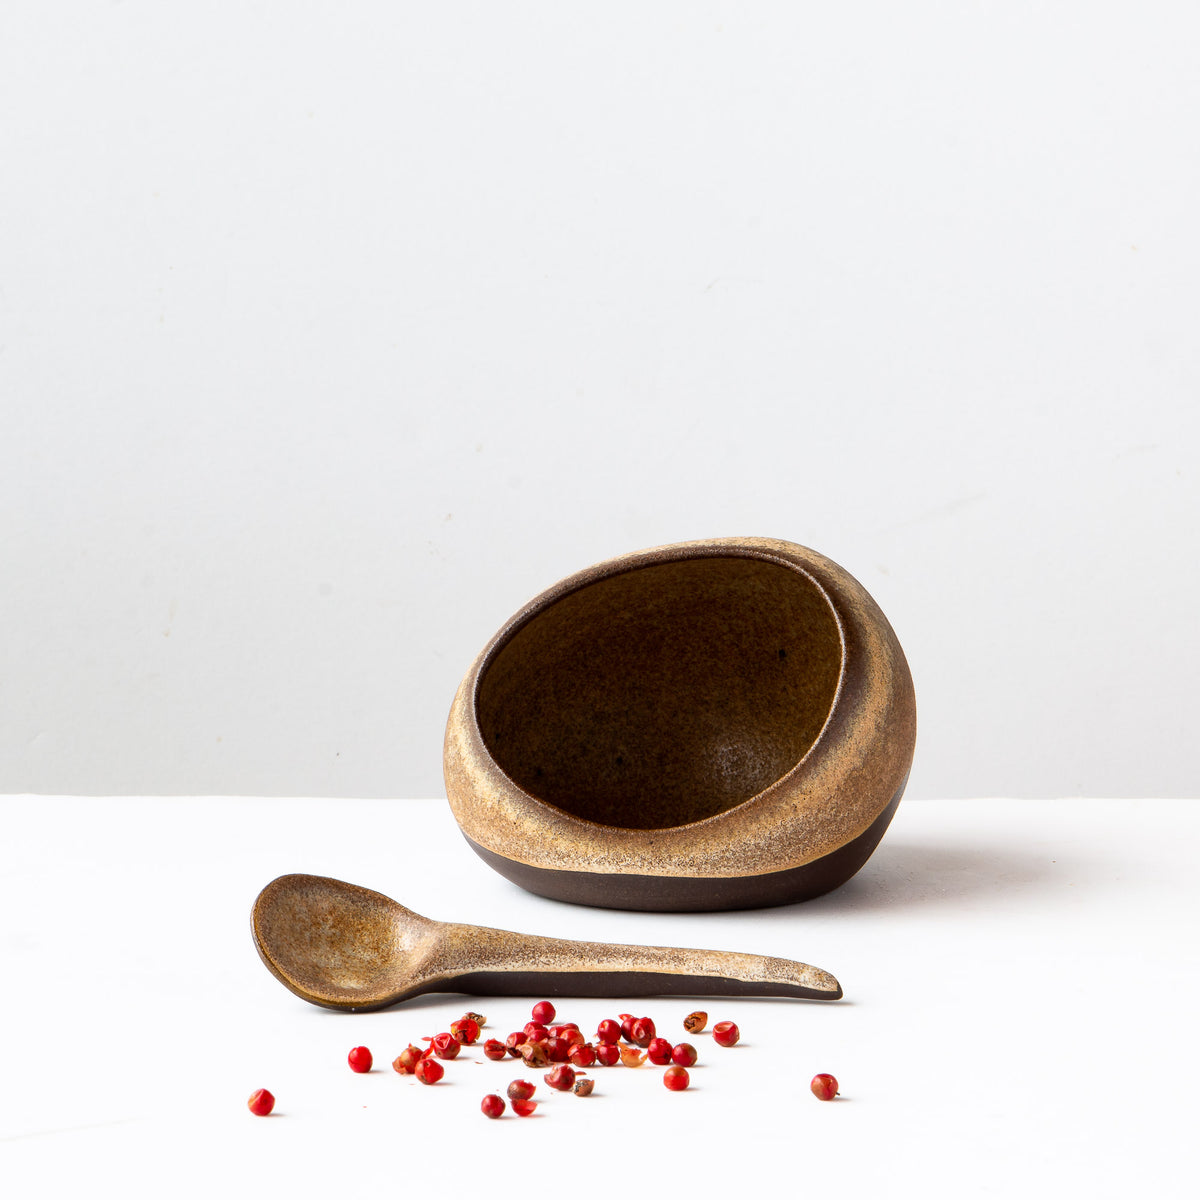 Salt, Pepper & Condiments Cellar & Spoon Set - Sold by Chic & Basta